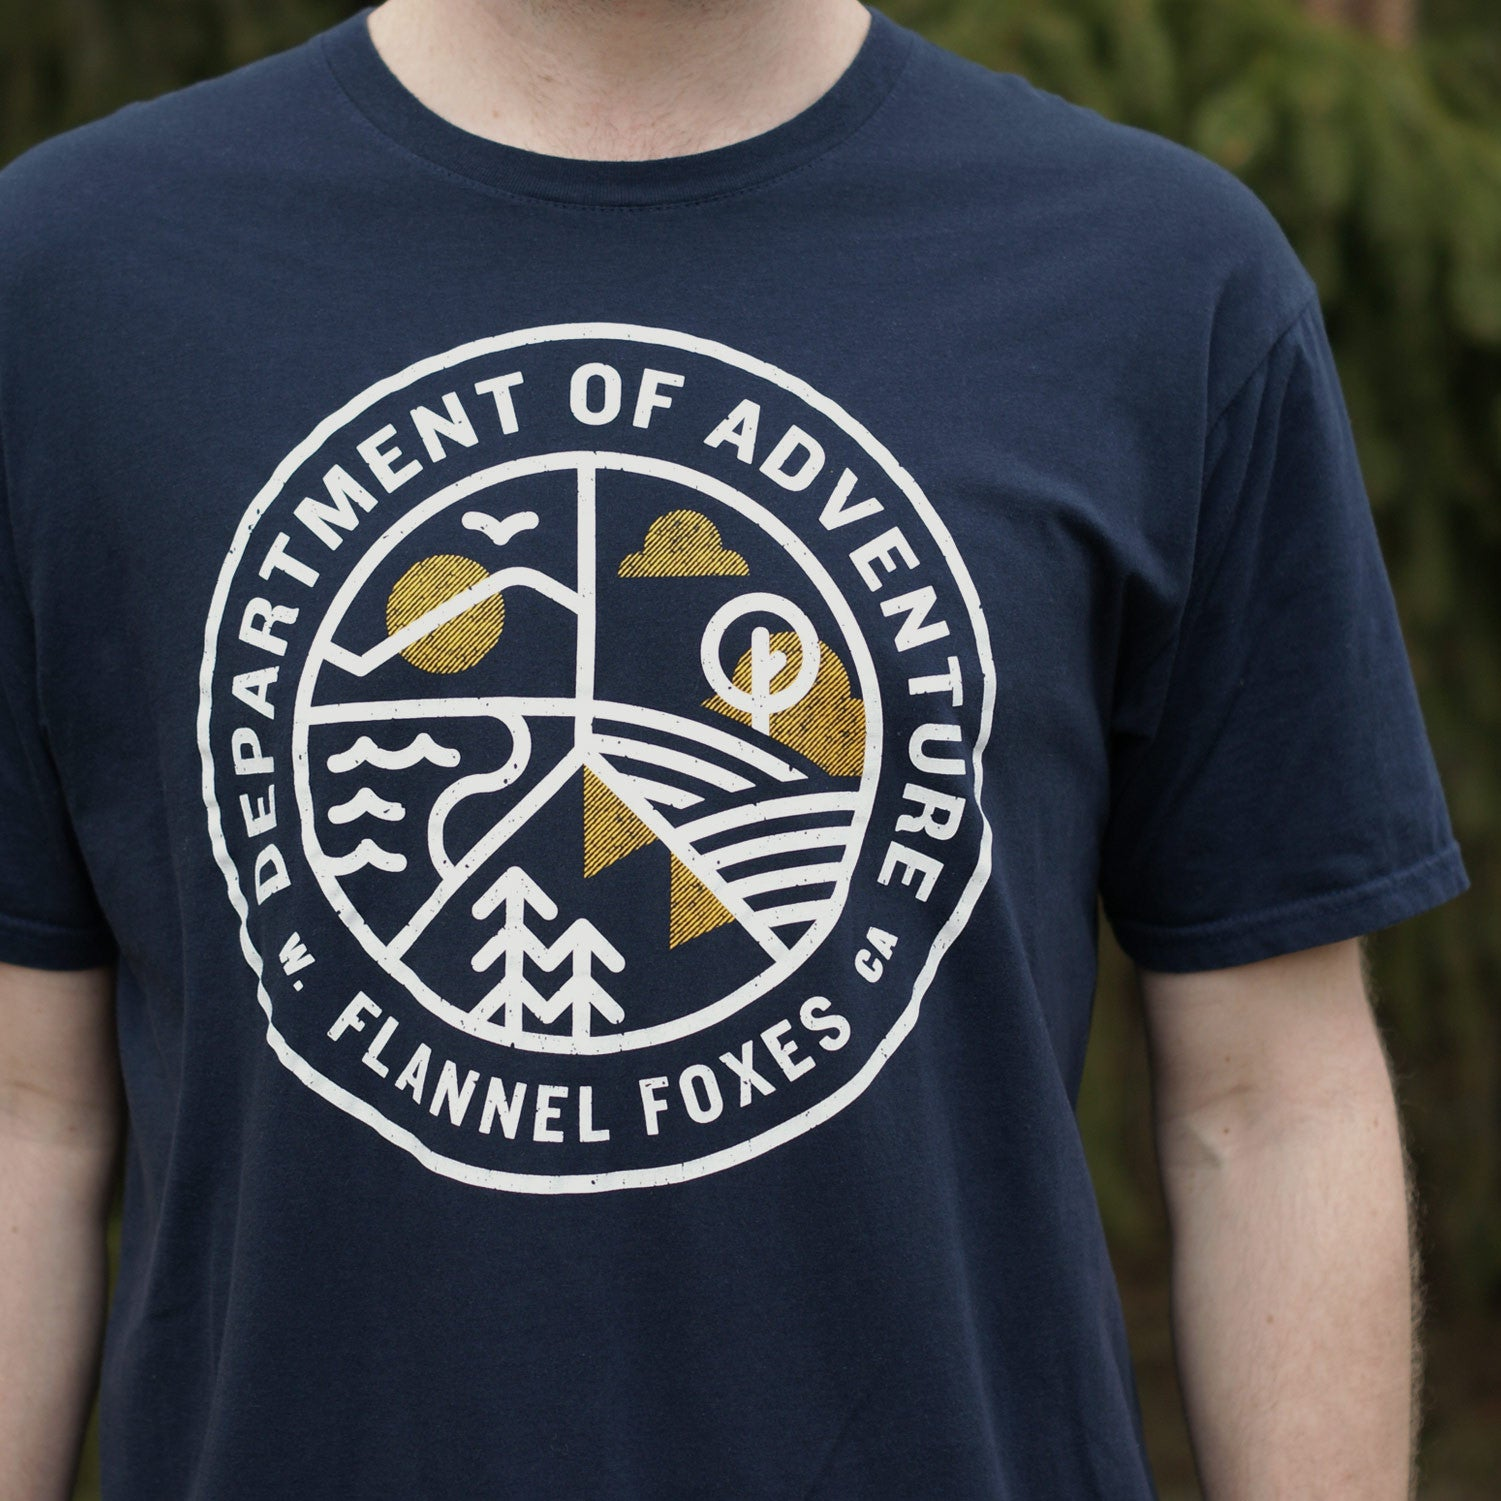 Department of Adventure Tee